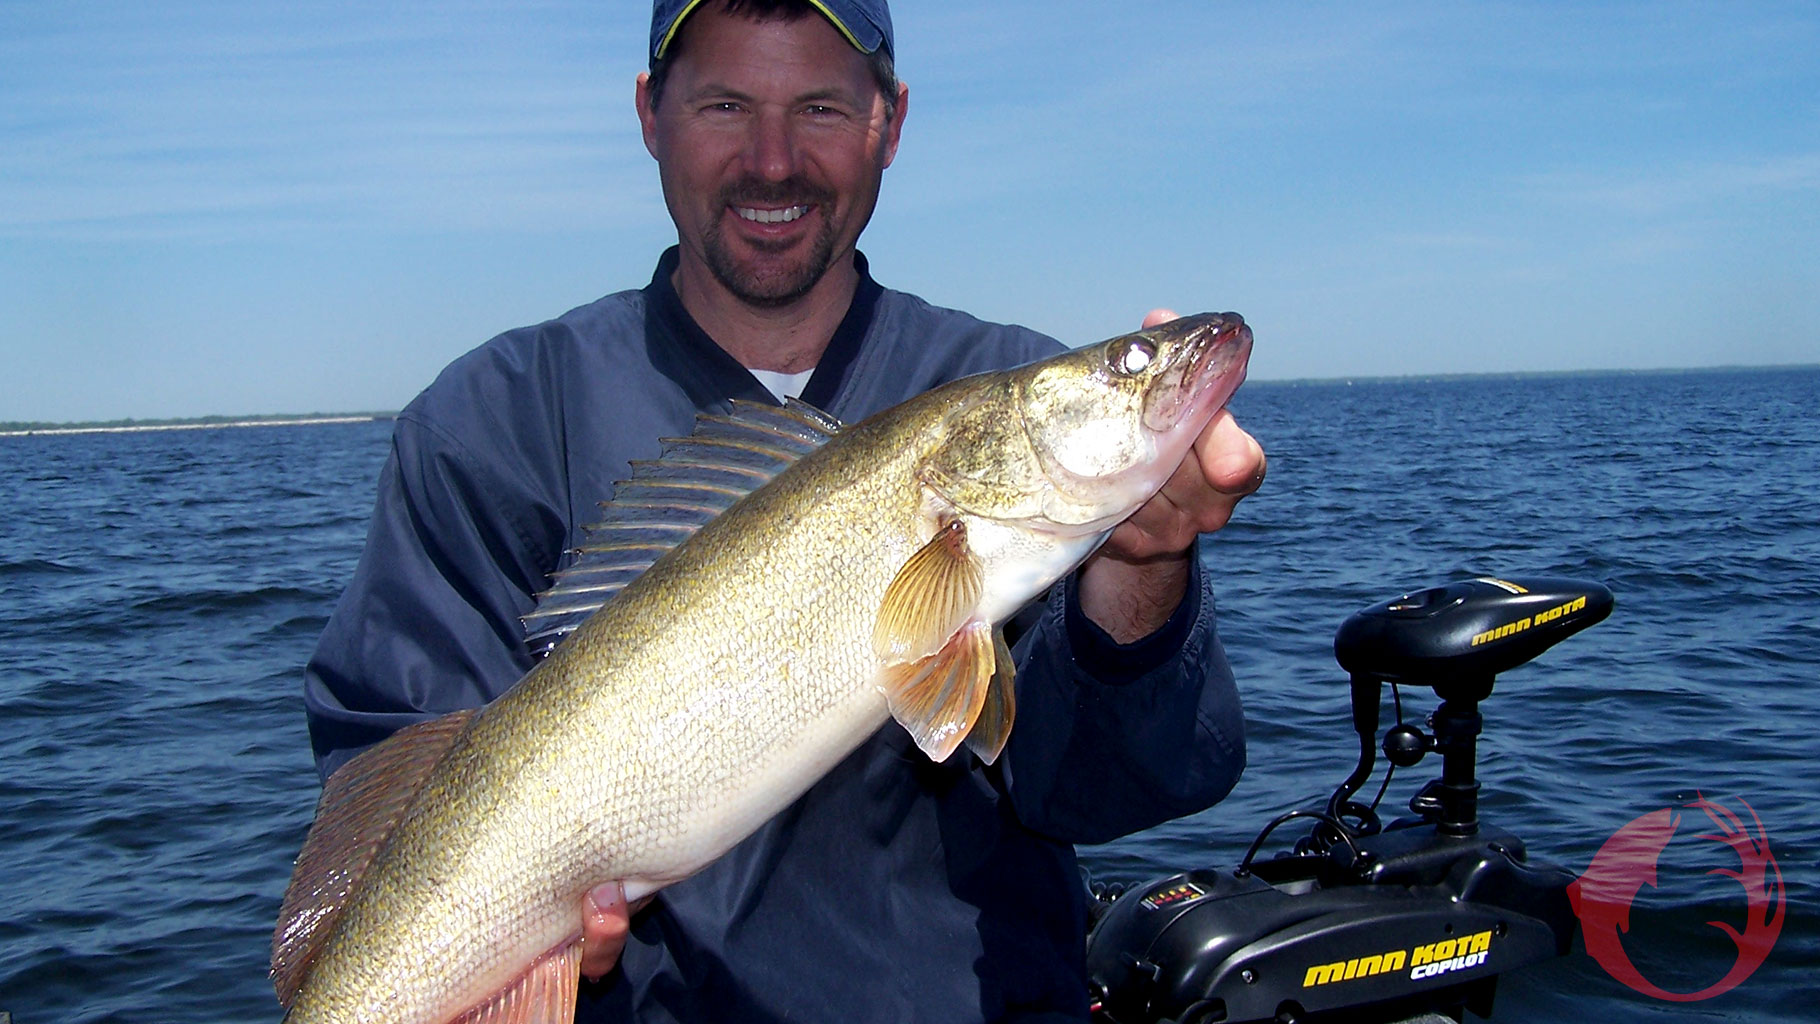 Slow Down in the Spring for More Fish